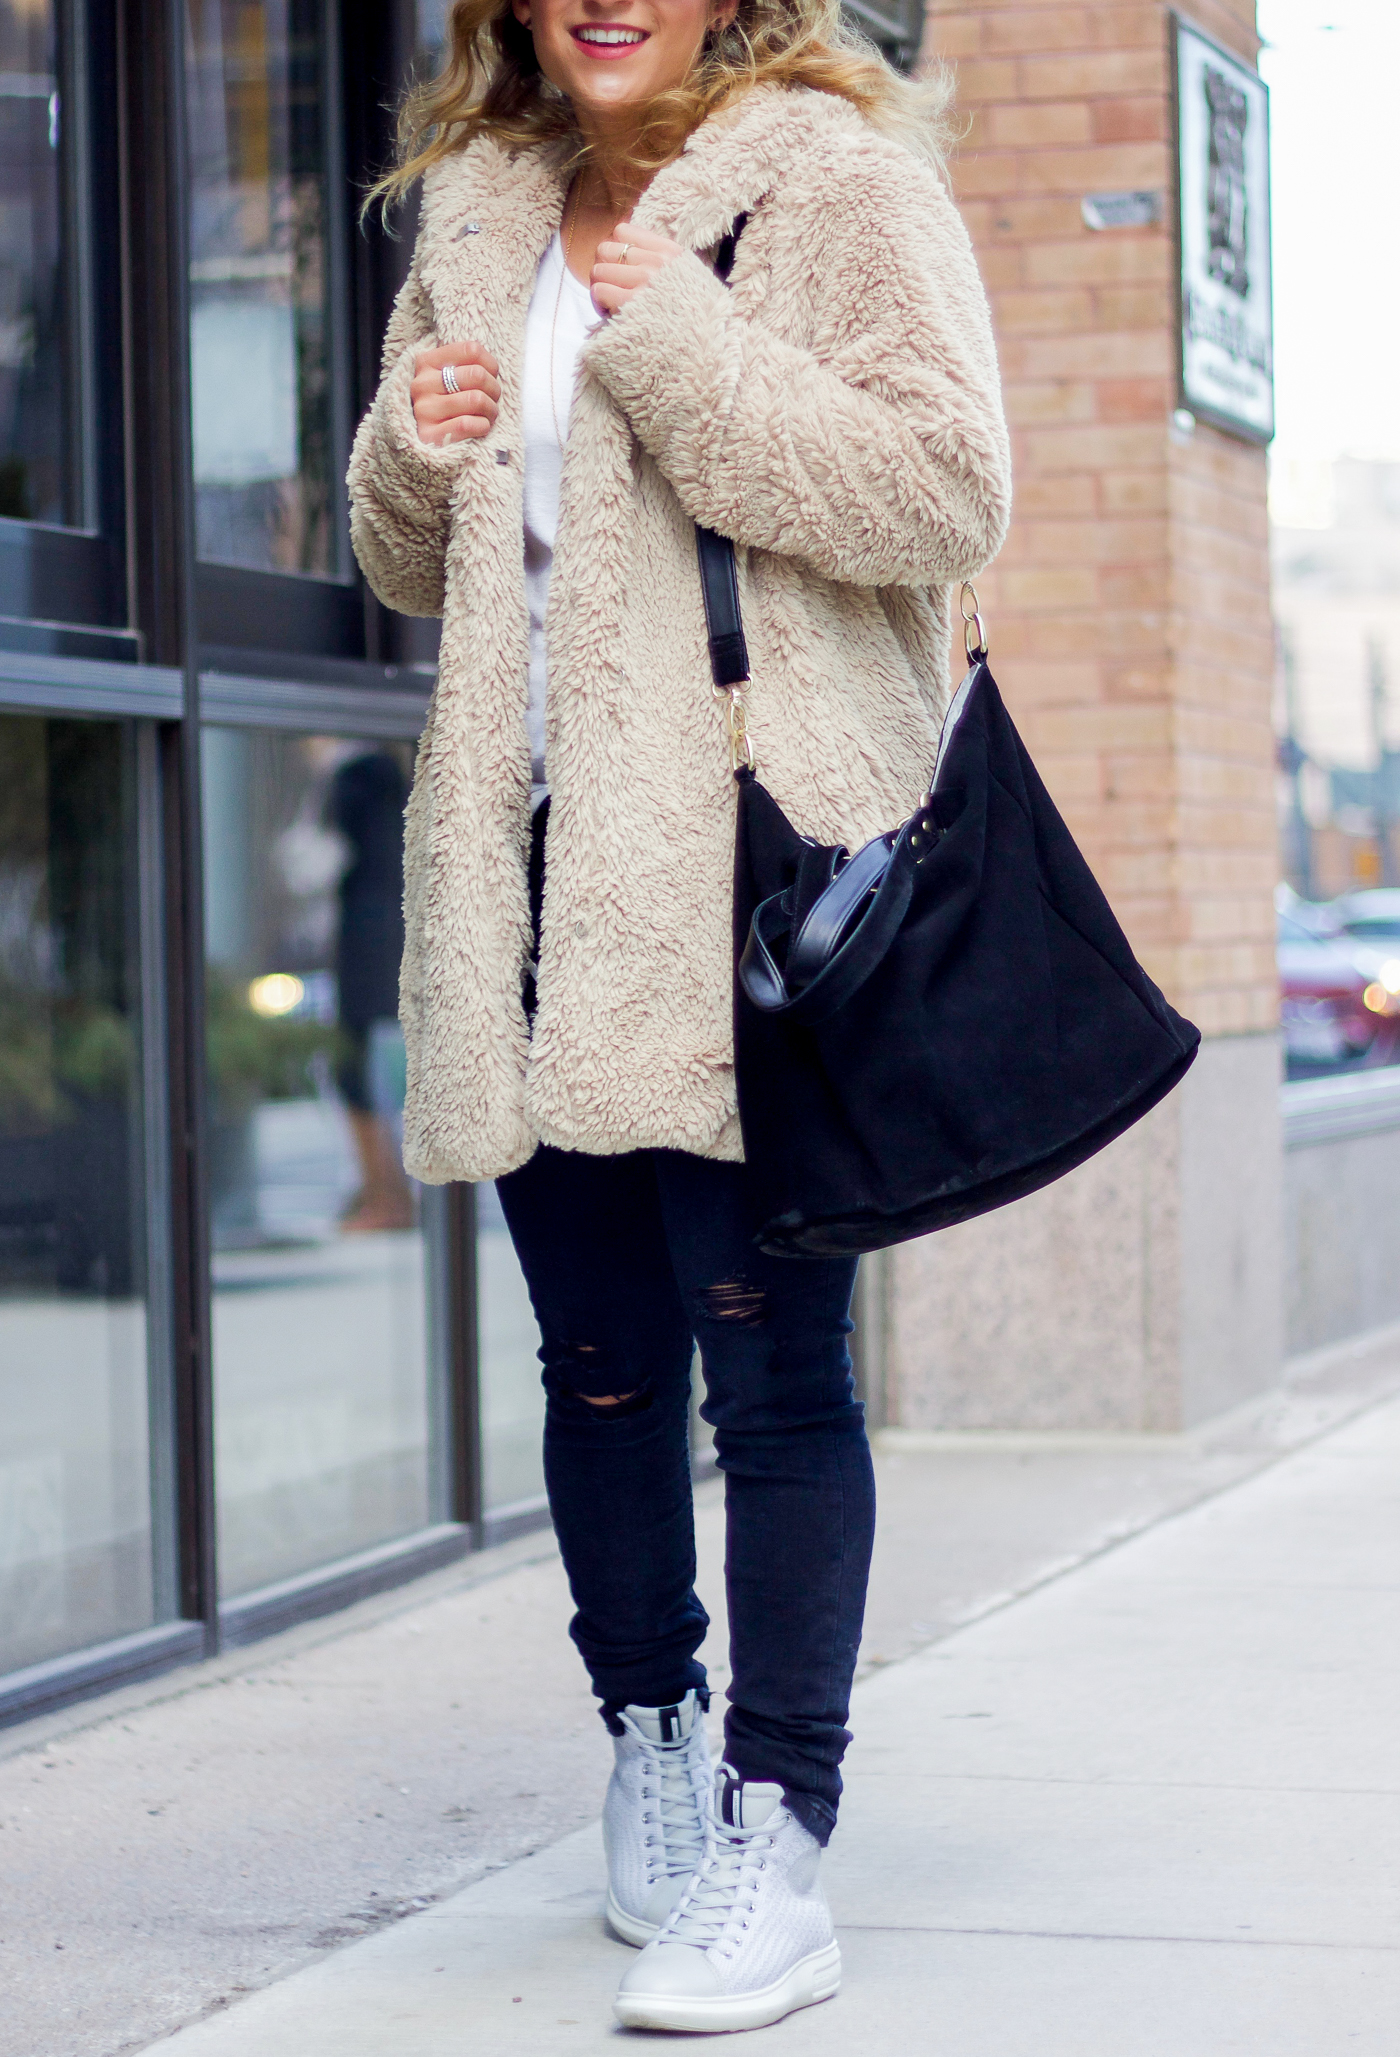 Toronto life and style blogger, Jackie Goldhar of Something About That is sharing a winter outfit idea, featuring Ecco Soft 3 High Top sneakers